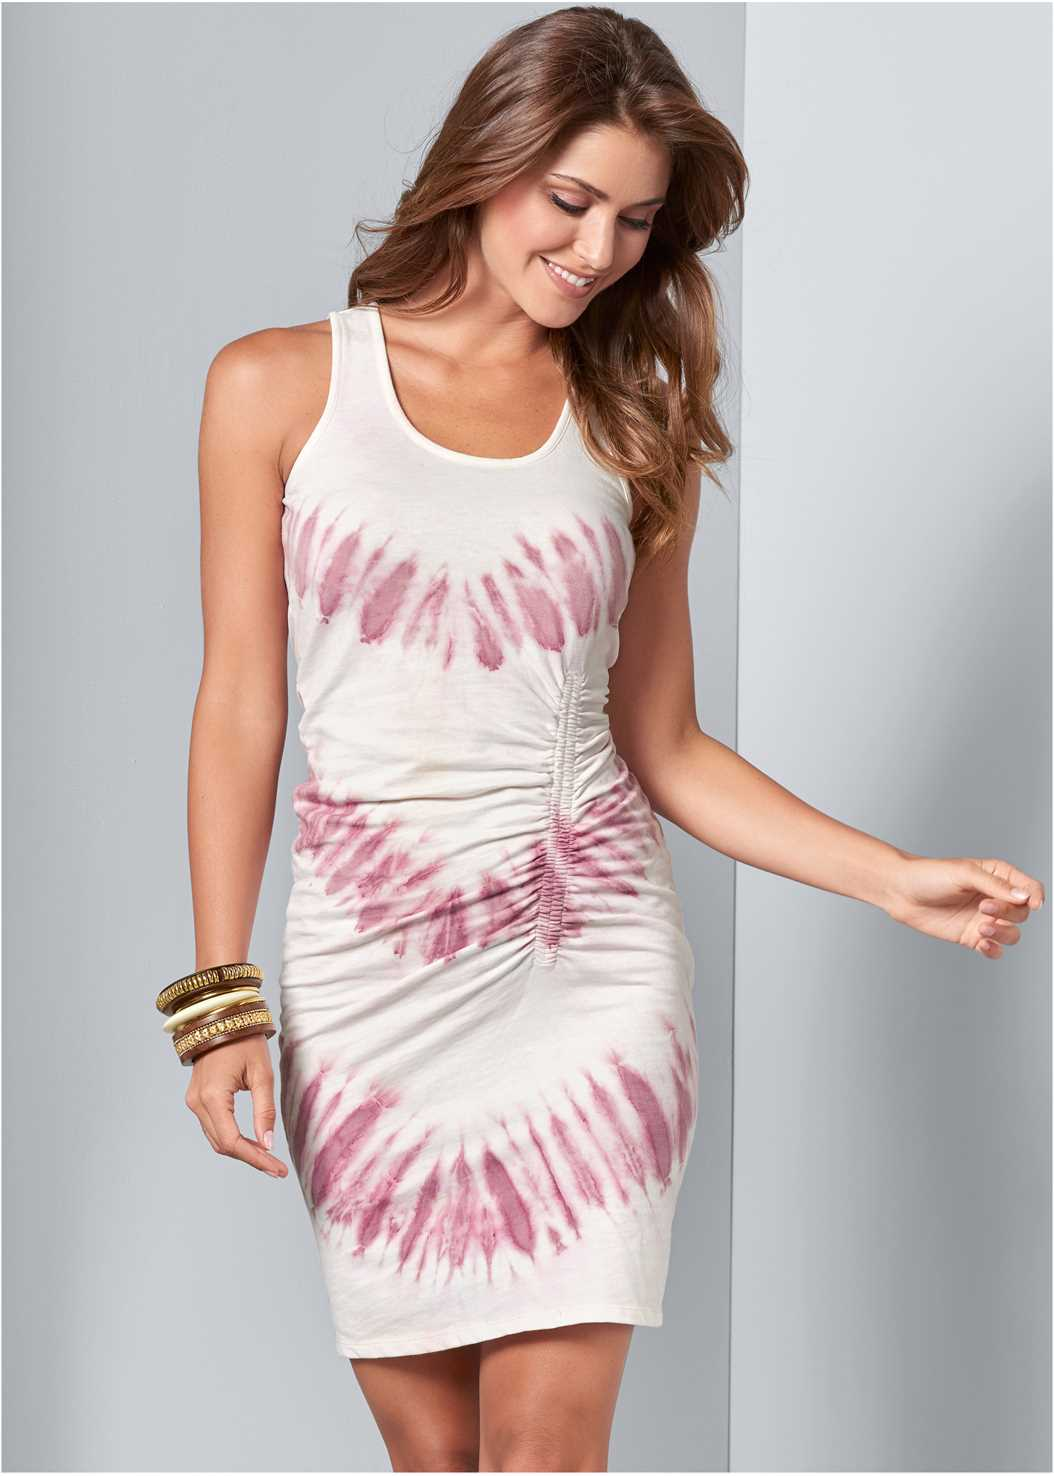 Tie Dye Ruched Lounge Dress,Pullover Lace Bra,Strappy Toe Ring Sandals,Bead Detail Crochet Bag